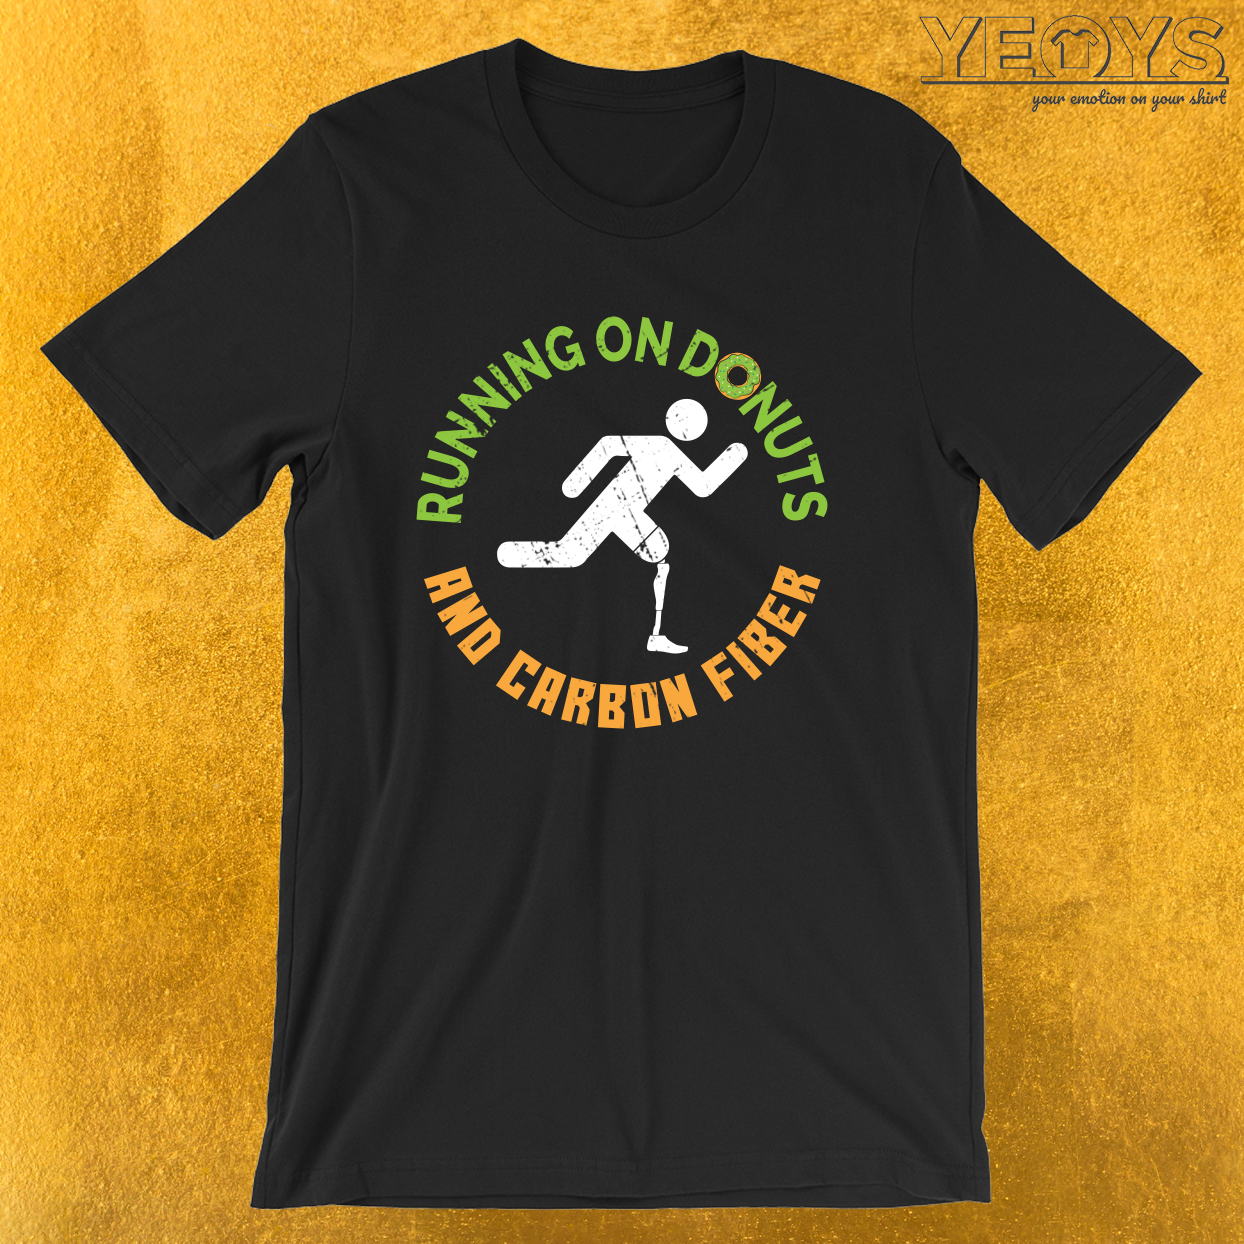 Running On Donuts And Carbon Fiber – Leg Amputee Tee